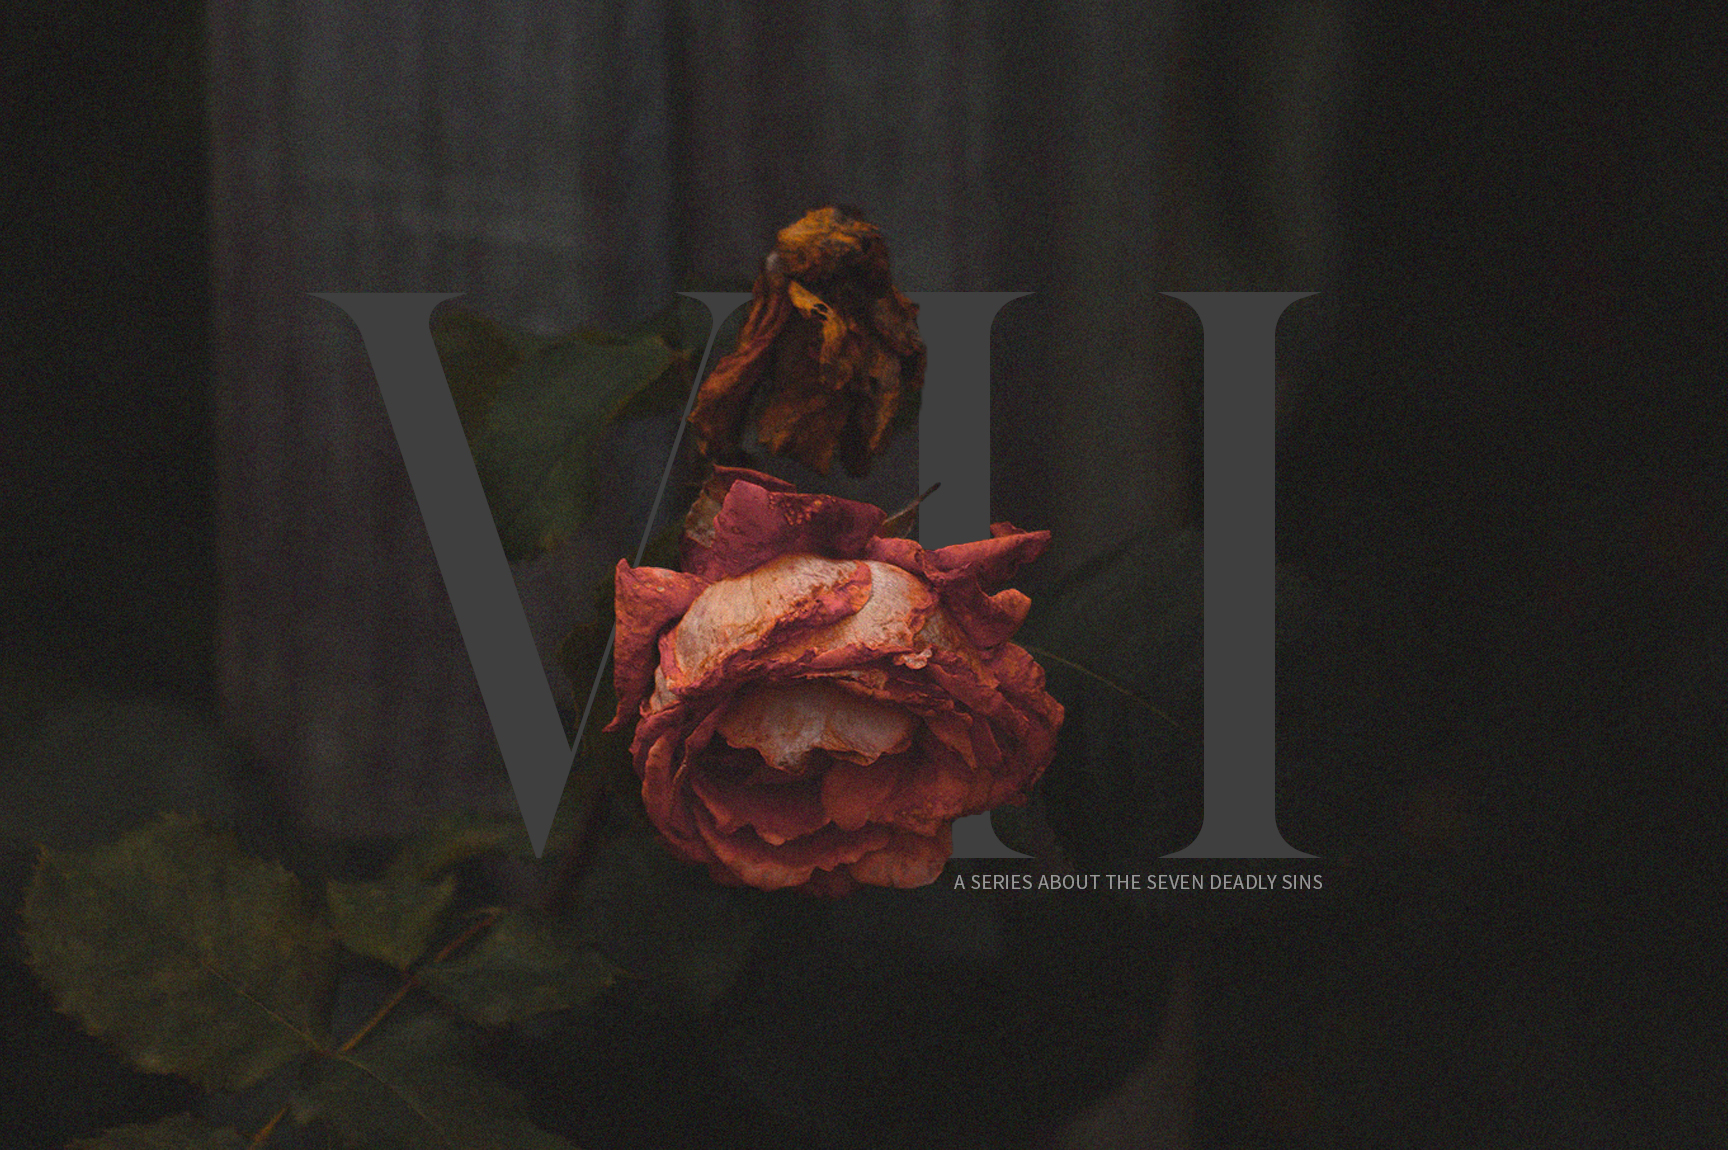 """Our church kicked off 2019 with a series called """"VII"""" talking about the seven deadly sins. We wanted to show how something beautiful like a rose could become decayed and withered and eventually die; how something that is good and beautiful like sex or food or possessions can become deadly when taken out of the context of God's Word and how He calls us to live as Christians. I went with an overly dark look for the background and type so to allow the muted reds of the rose to stand out in the foreground."""